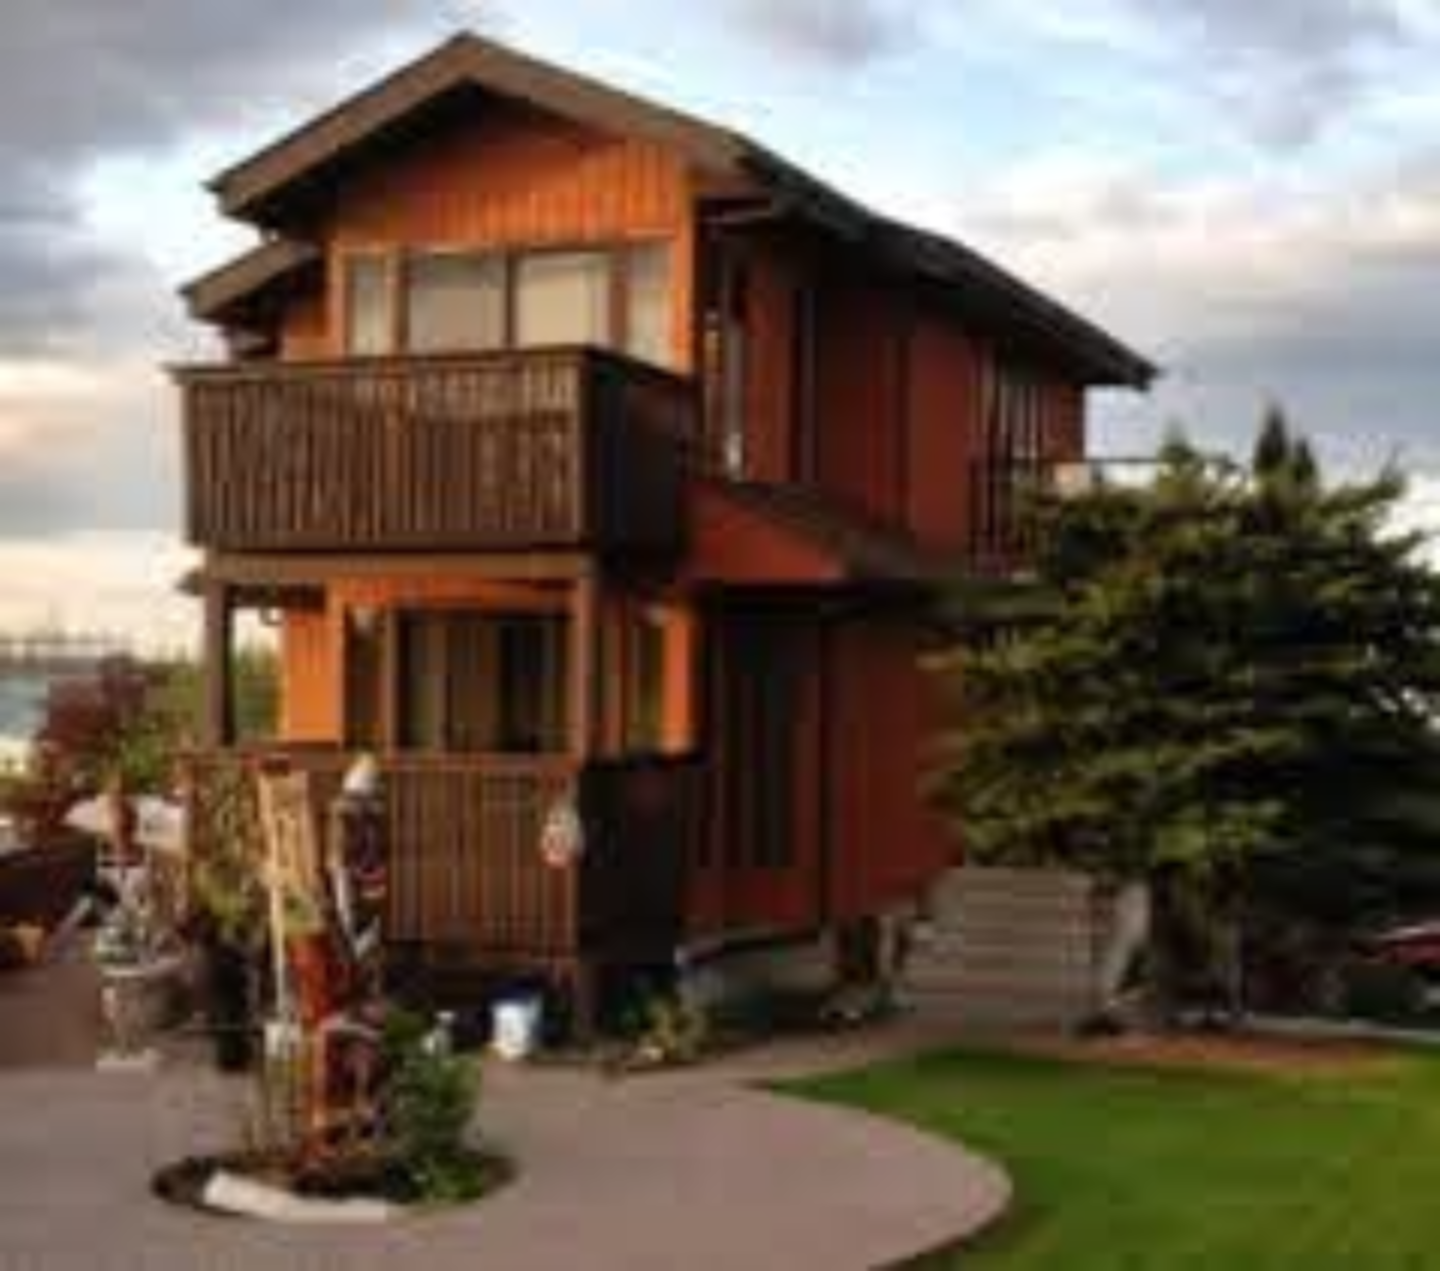 A house with trees in the background at Calgary City View Bed & Breakfast.